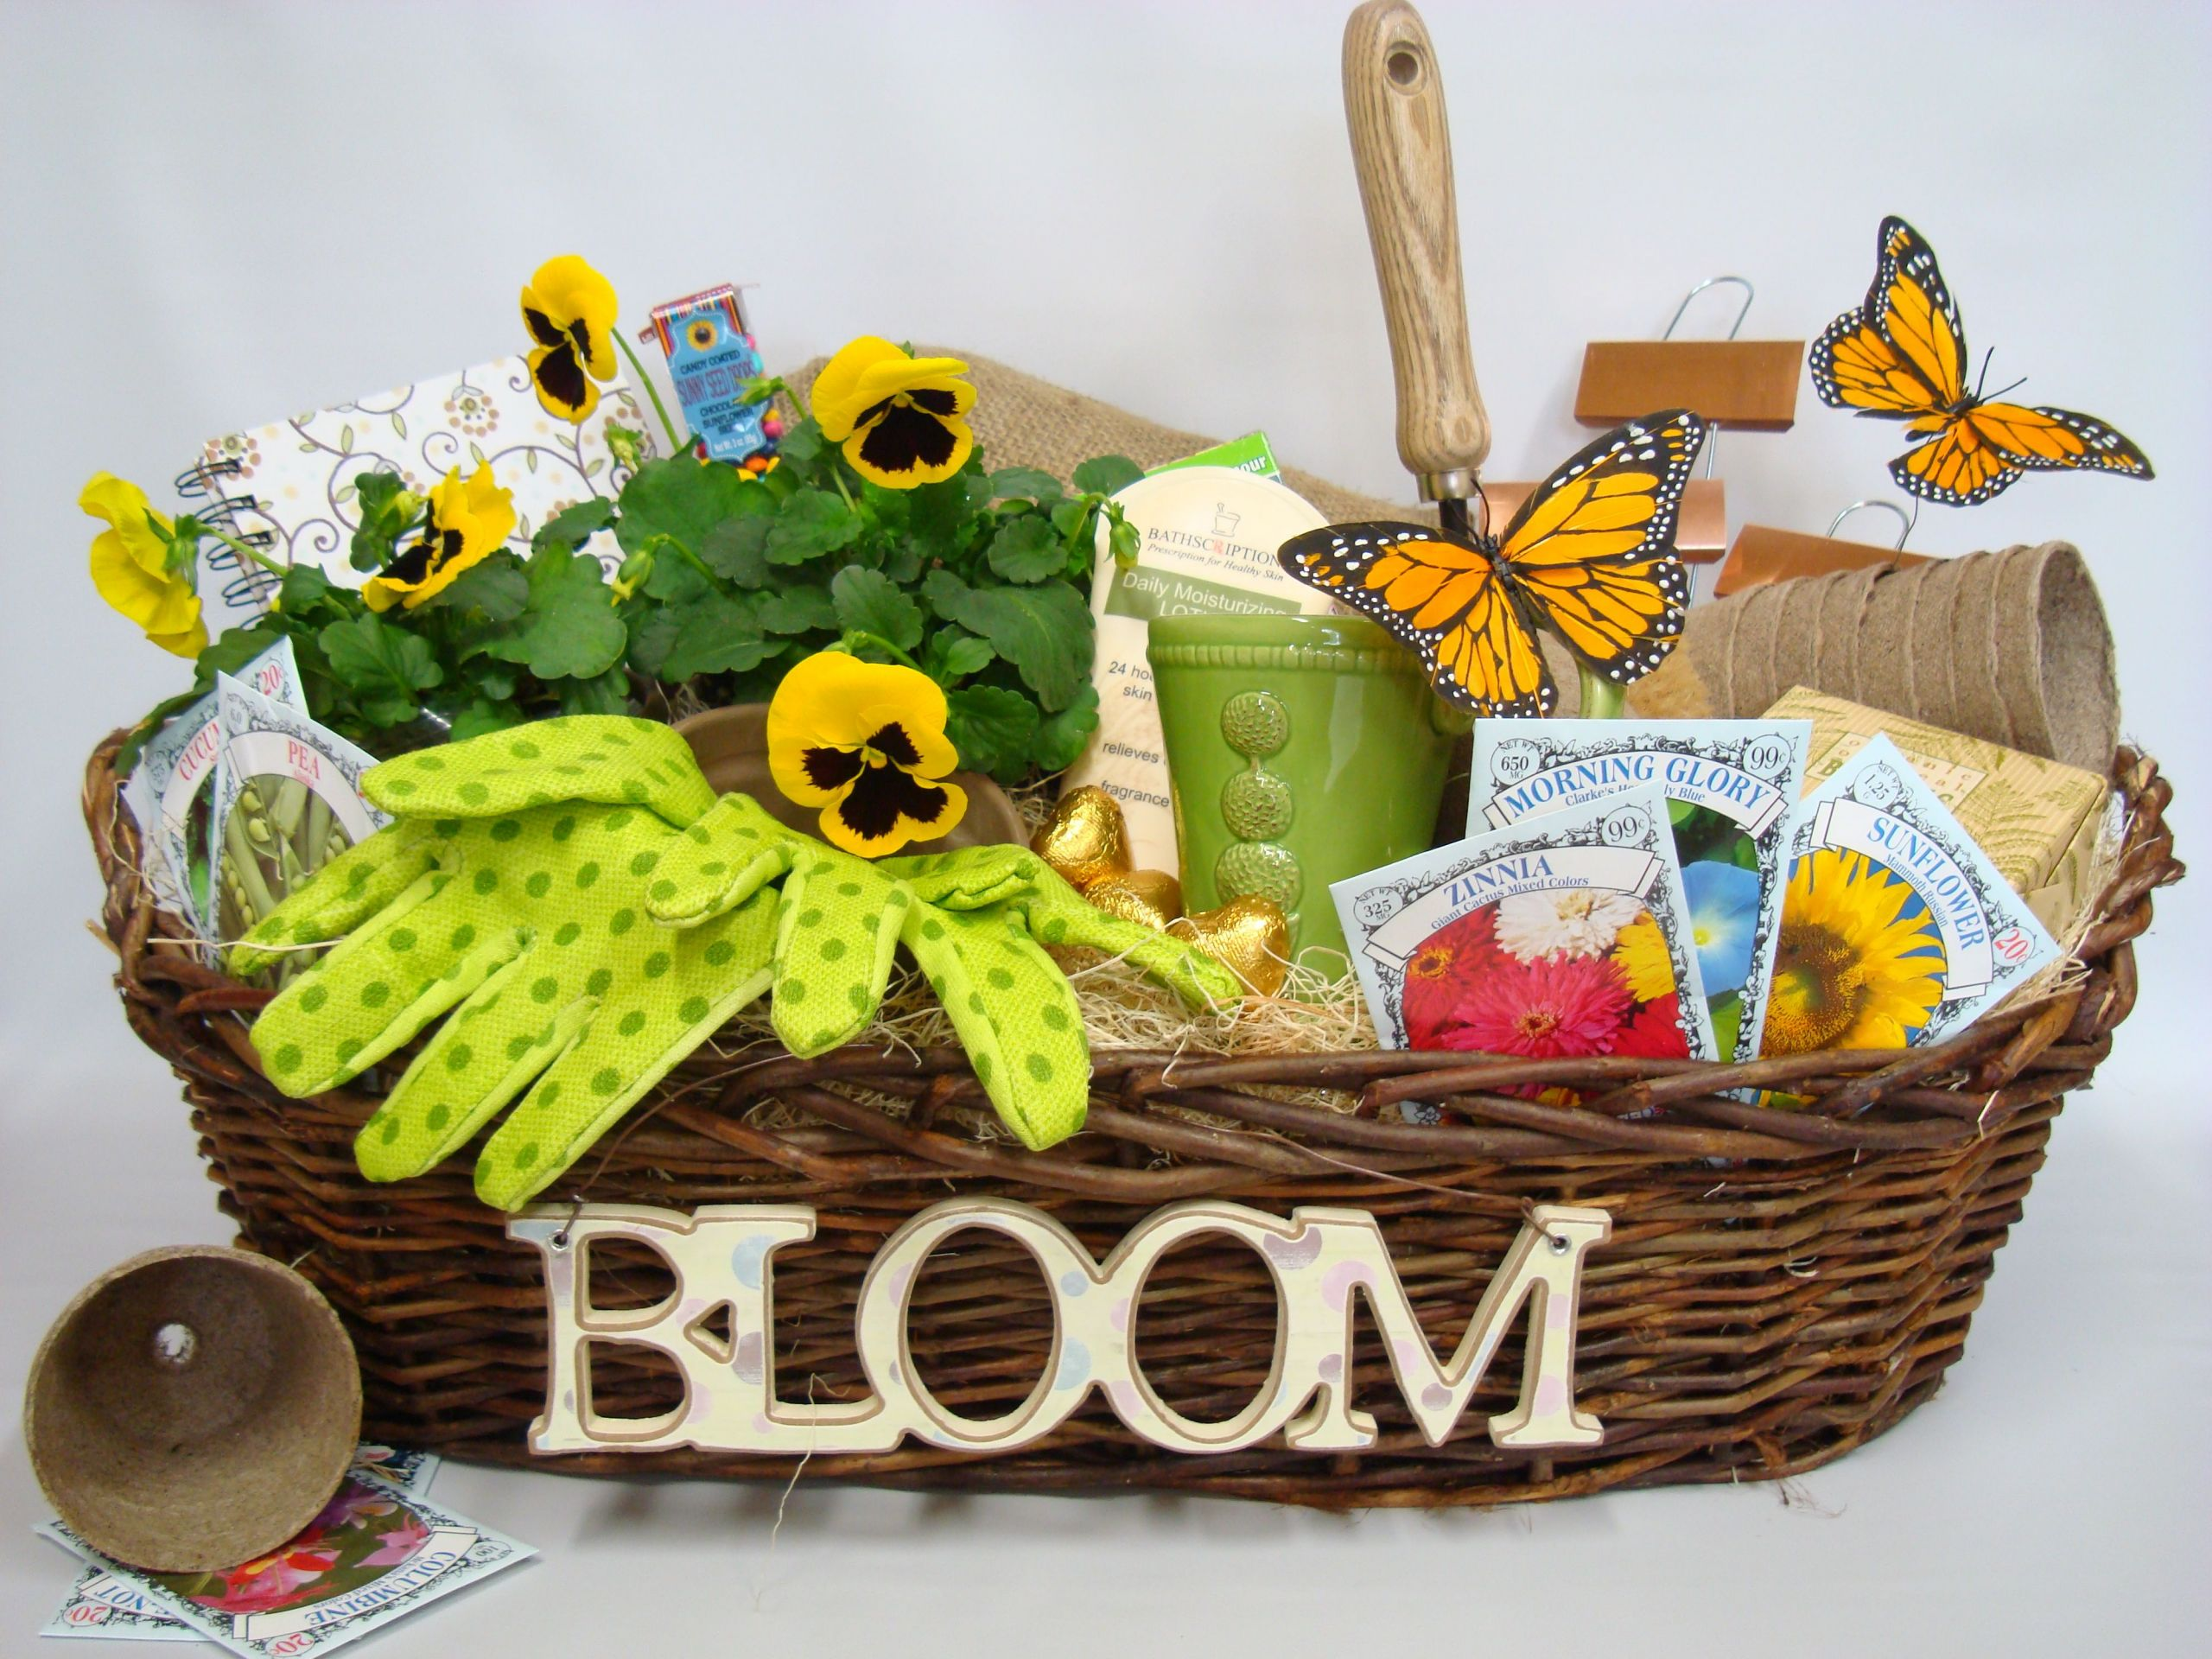 Garden Themed Gift Basket Ideas  Attaching wooden letters is a good idea as opposed to